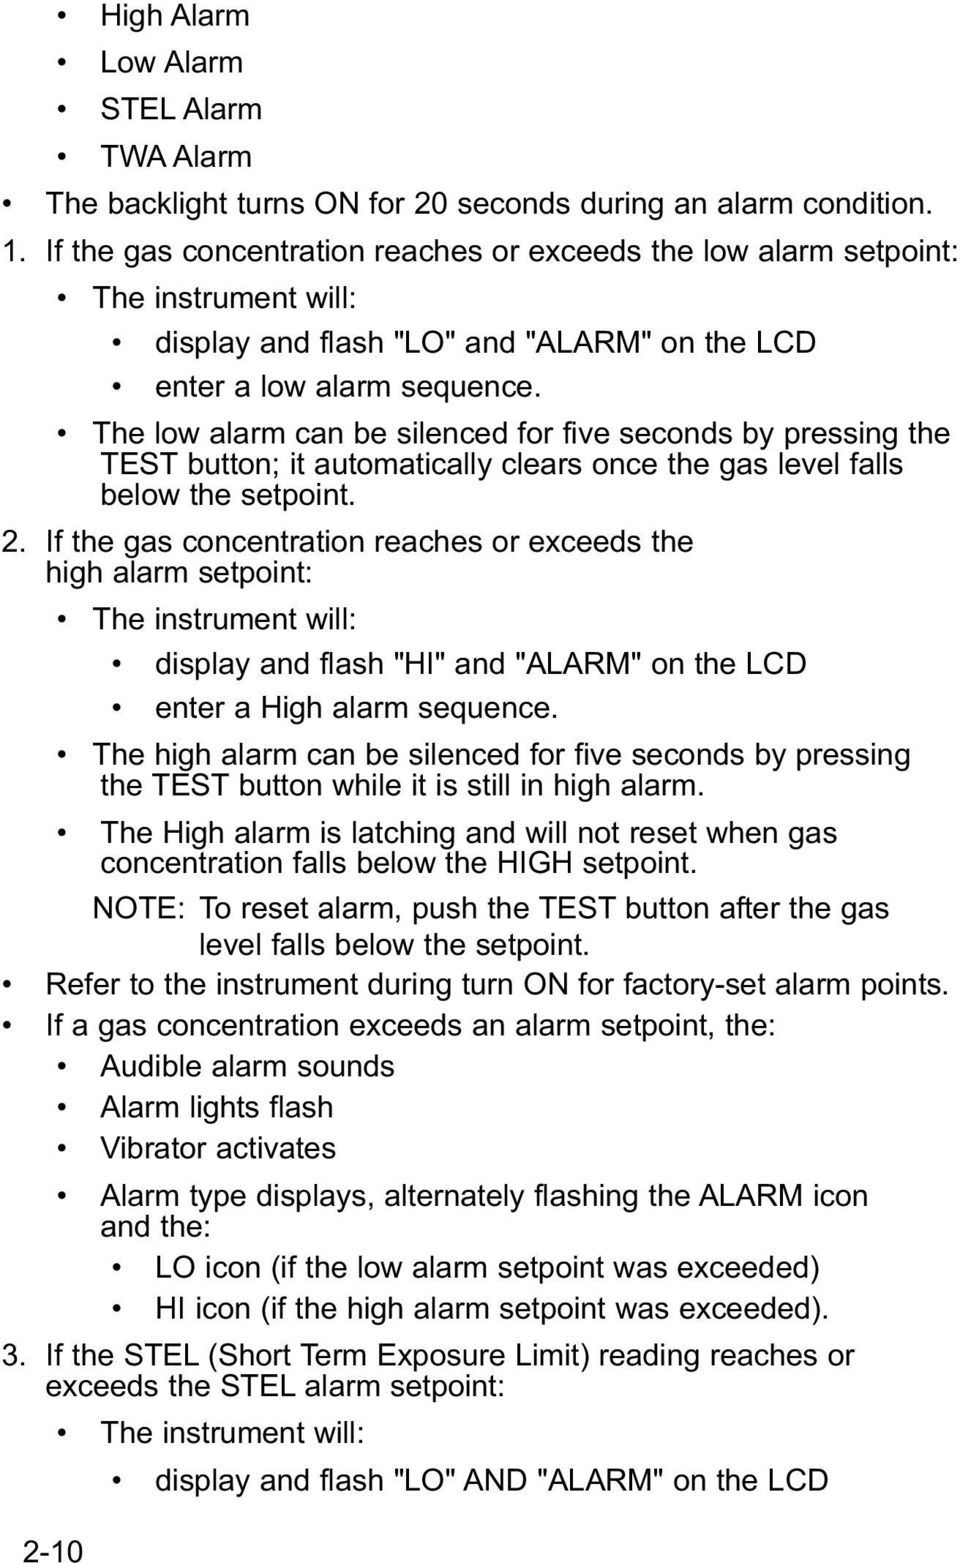 The low alarm can be silenced for five seconds by pressing the TEST button; it automatically clears once the gas level falls below the setpoint. 2.